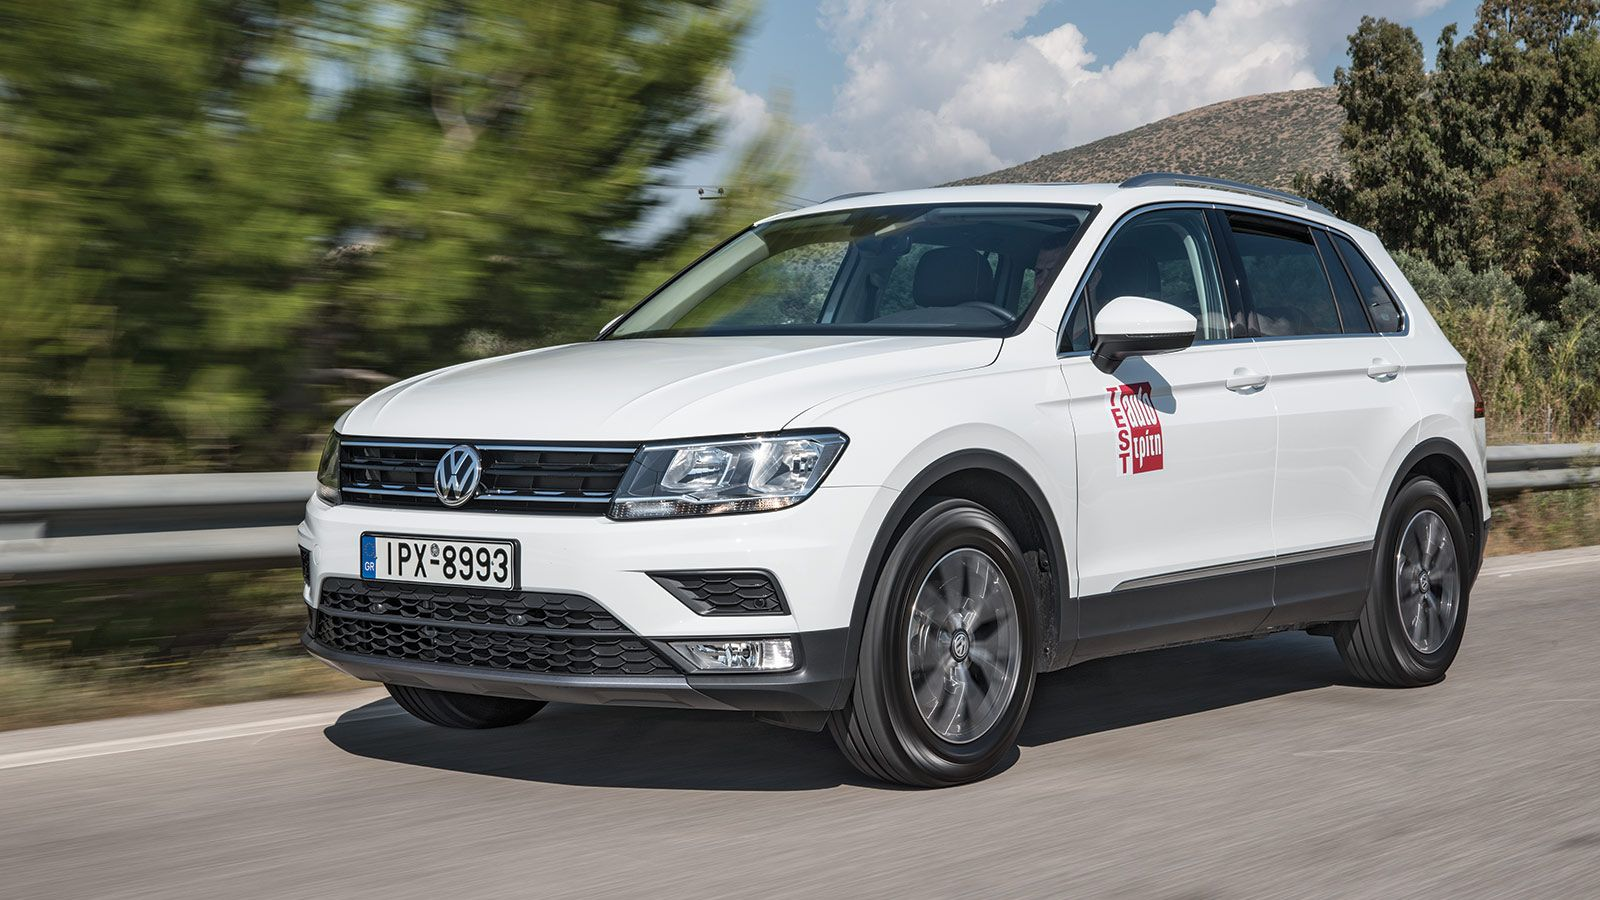 test vw tiguan 1 4 tsi volkswagen tiguan. Black Bedroom Furniture Sets. Home Design Ideas